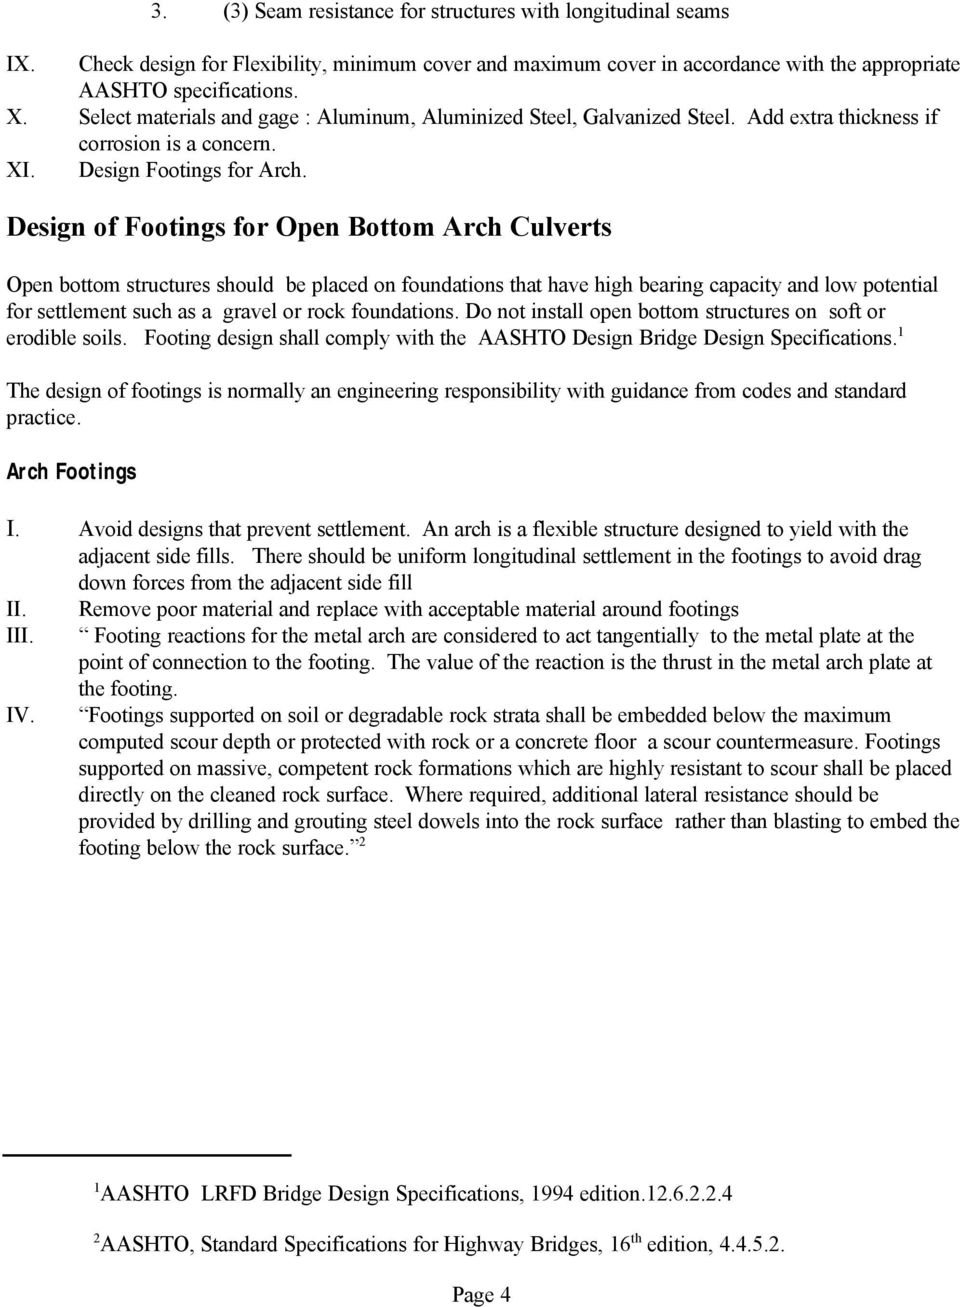 Design of Footings for Open Bottom Arch Culverts Open bottom structures should be placed on foundations that have high bearing capacity and low potential for settlement such as a gravel or rock